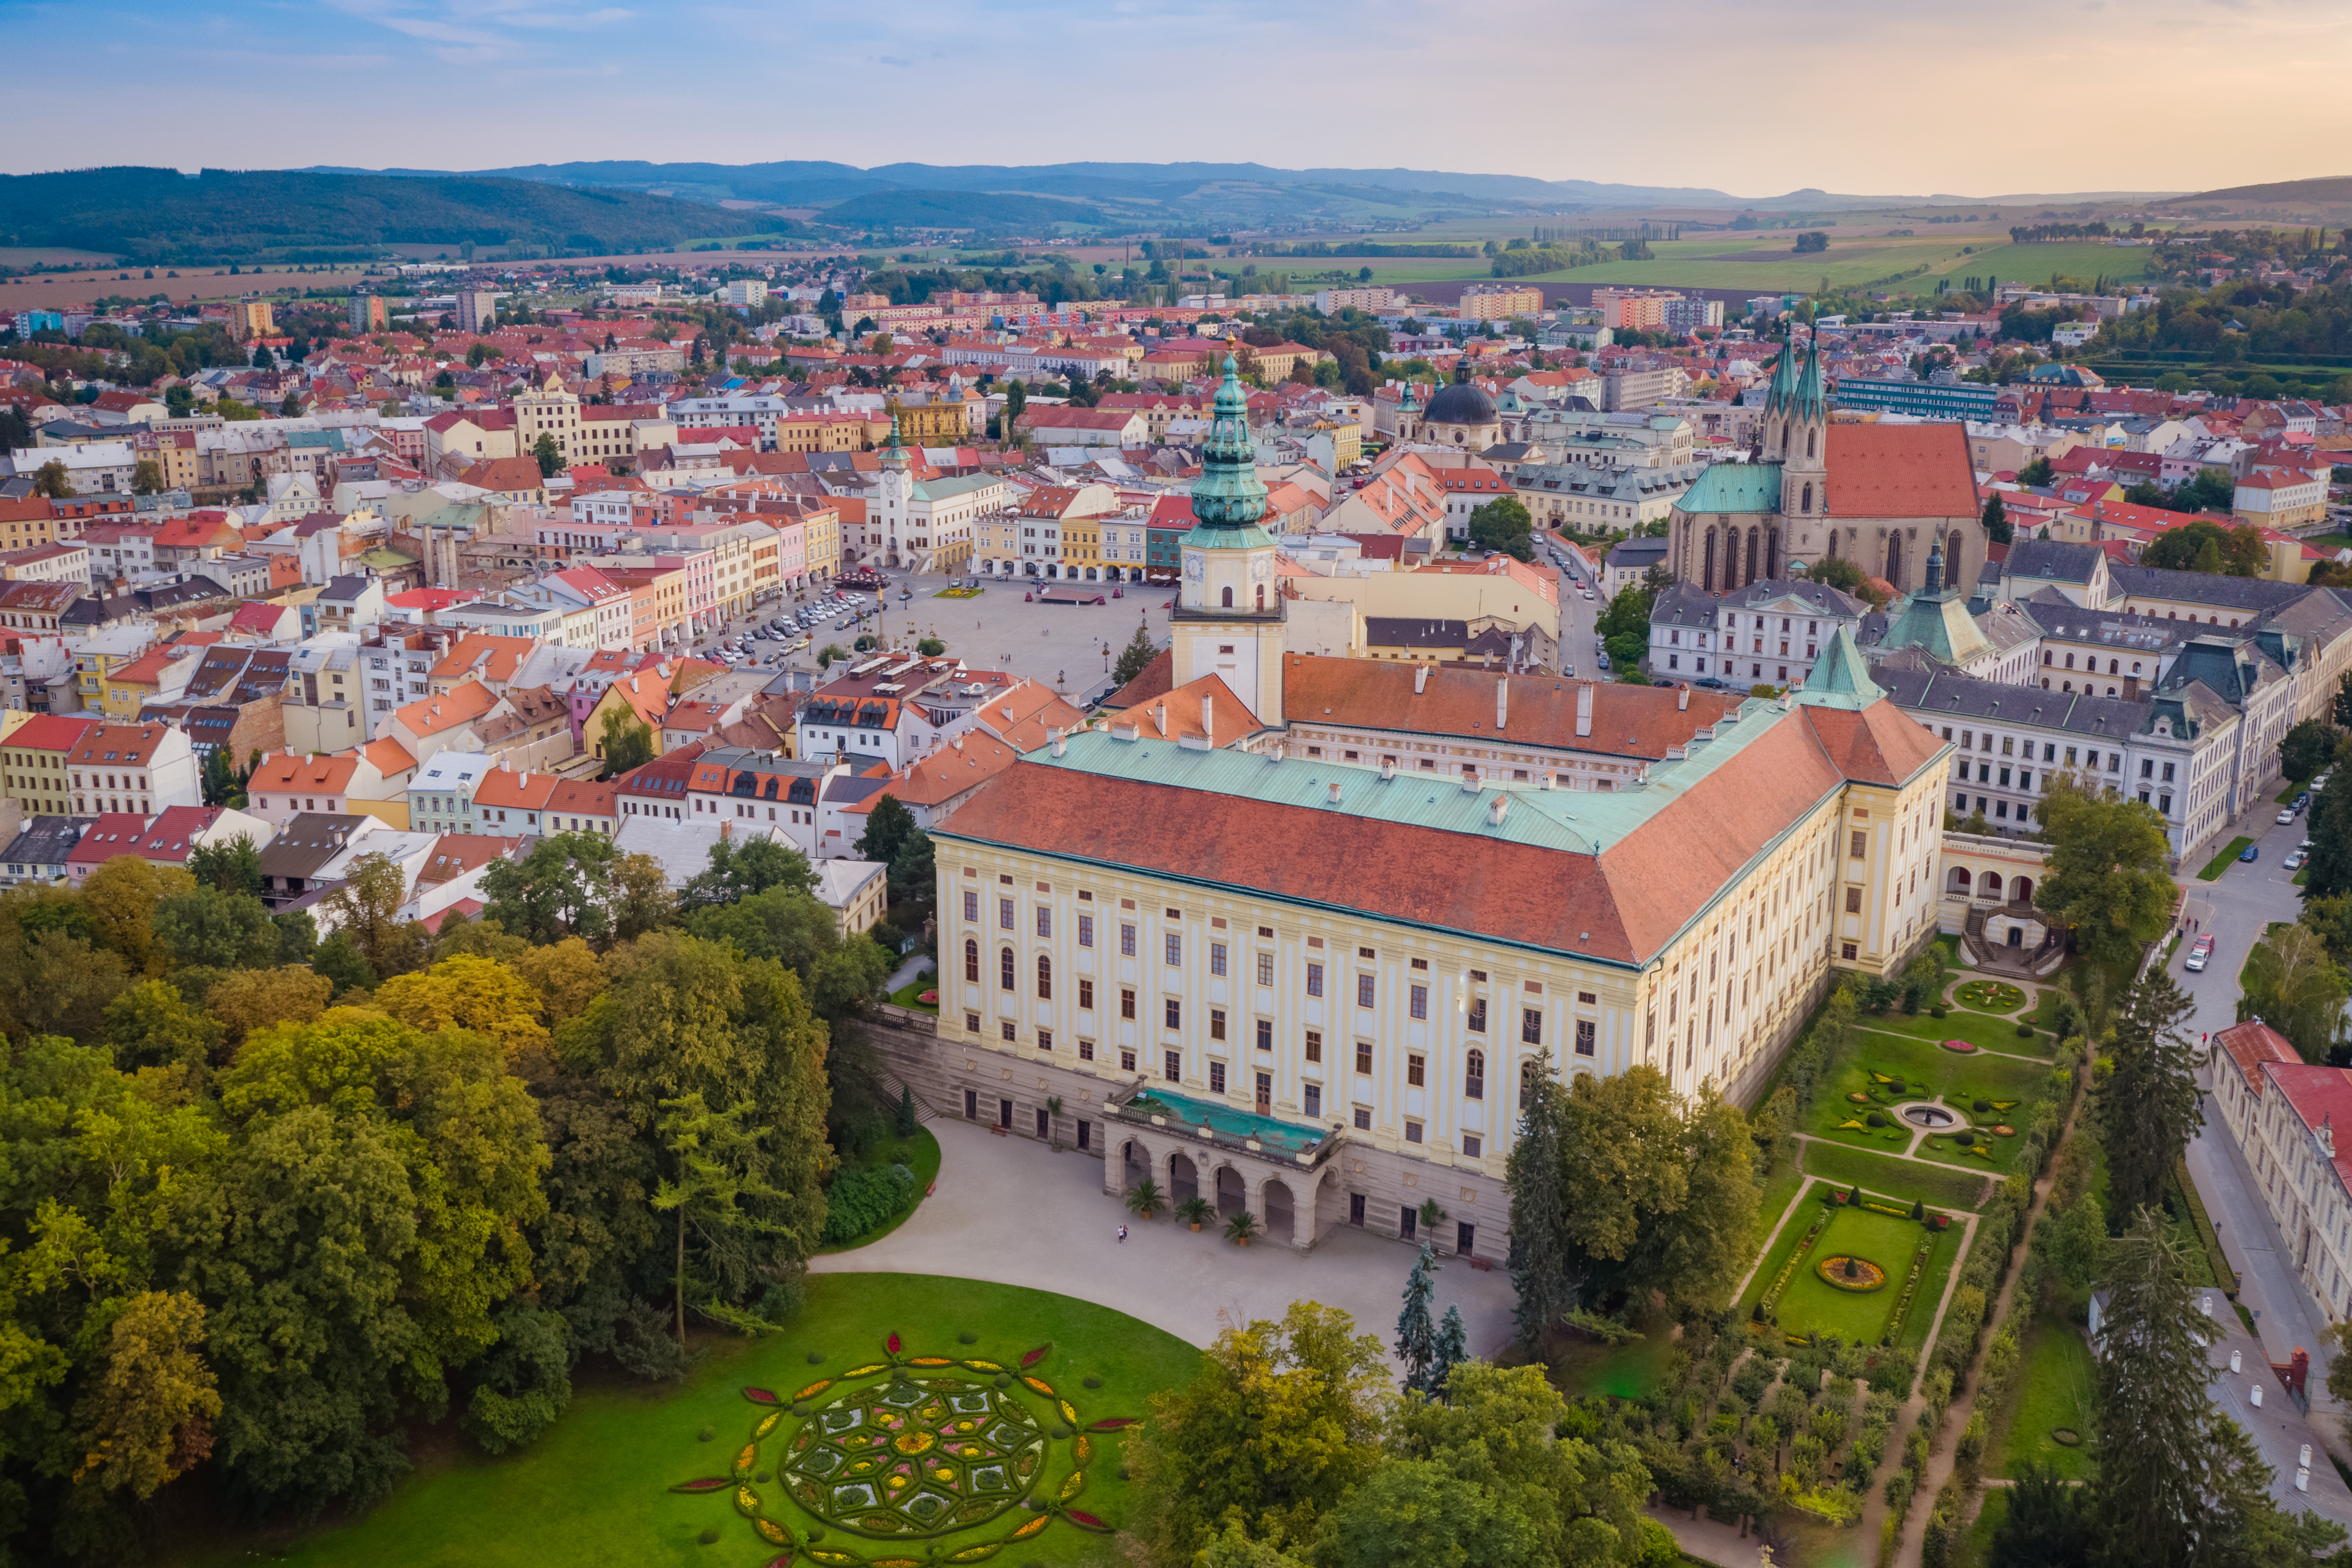 The view of the city of Kroměříž with its dominant, the Archiepiscopal Castle and the Castle Garden. In this picture you can see just a small piece of the whole Garden which is completely an area of 54 hectares. - © The Archive of the Castle of Kroměříž